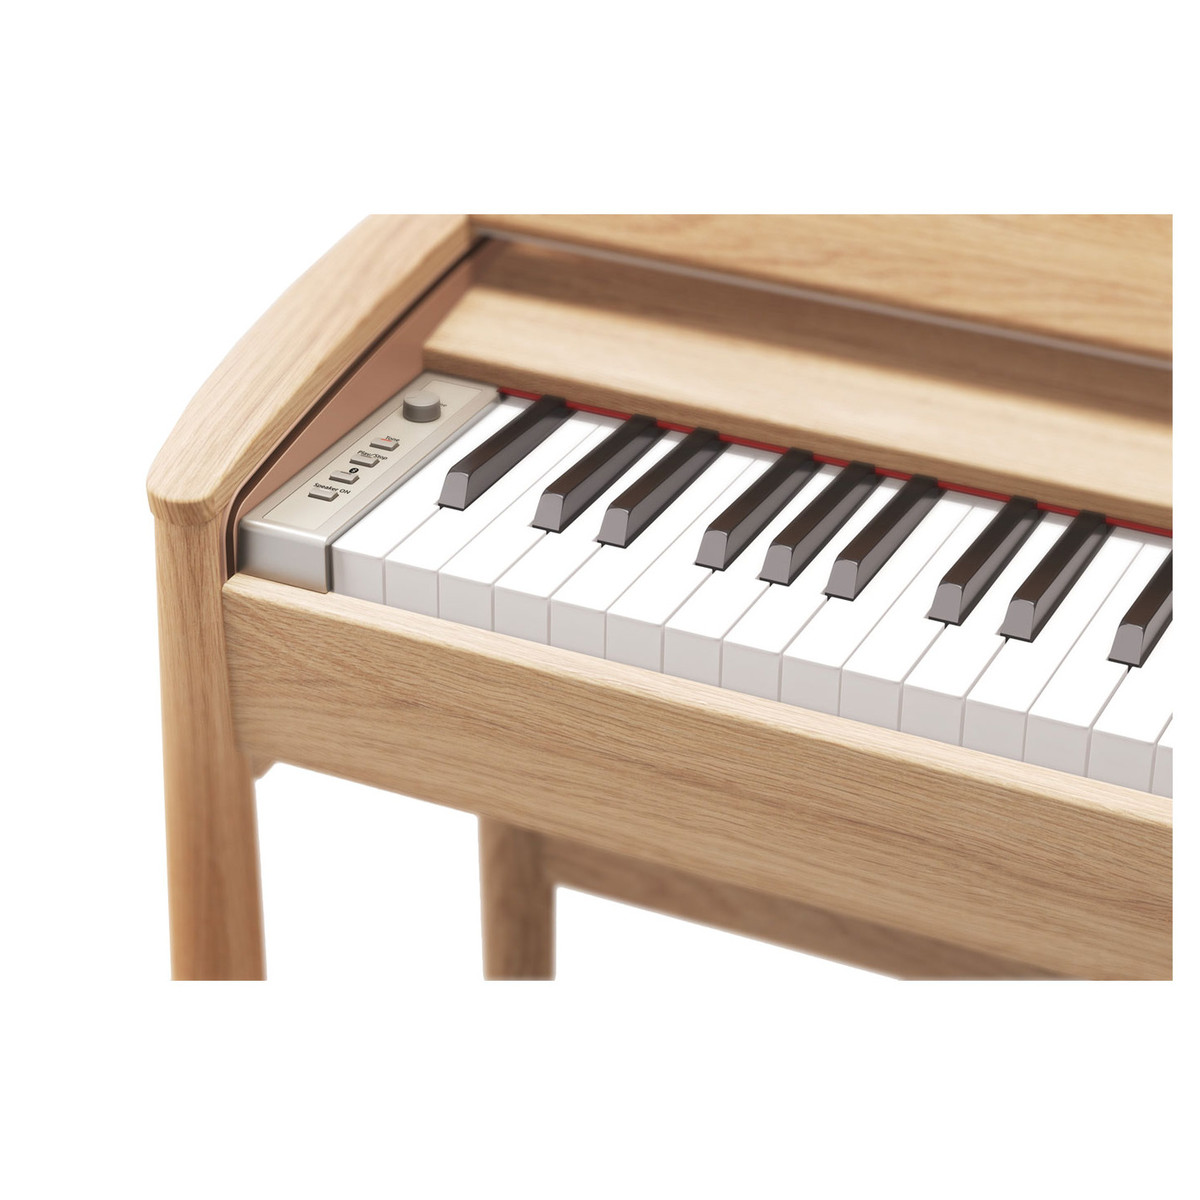 roland kiyola kf 10 digital piano with stool pure oak at. Black Bedroom Furniture Sets. Home Design Ideas